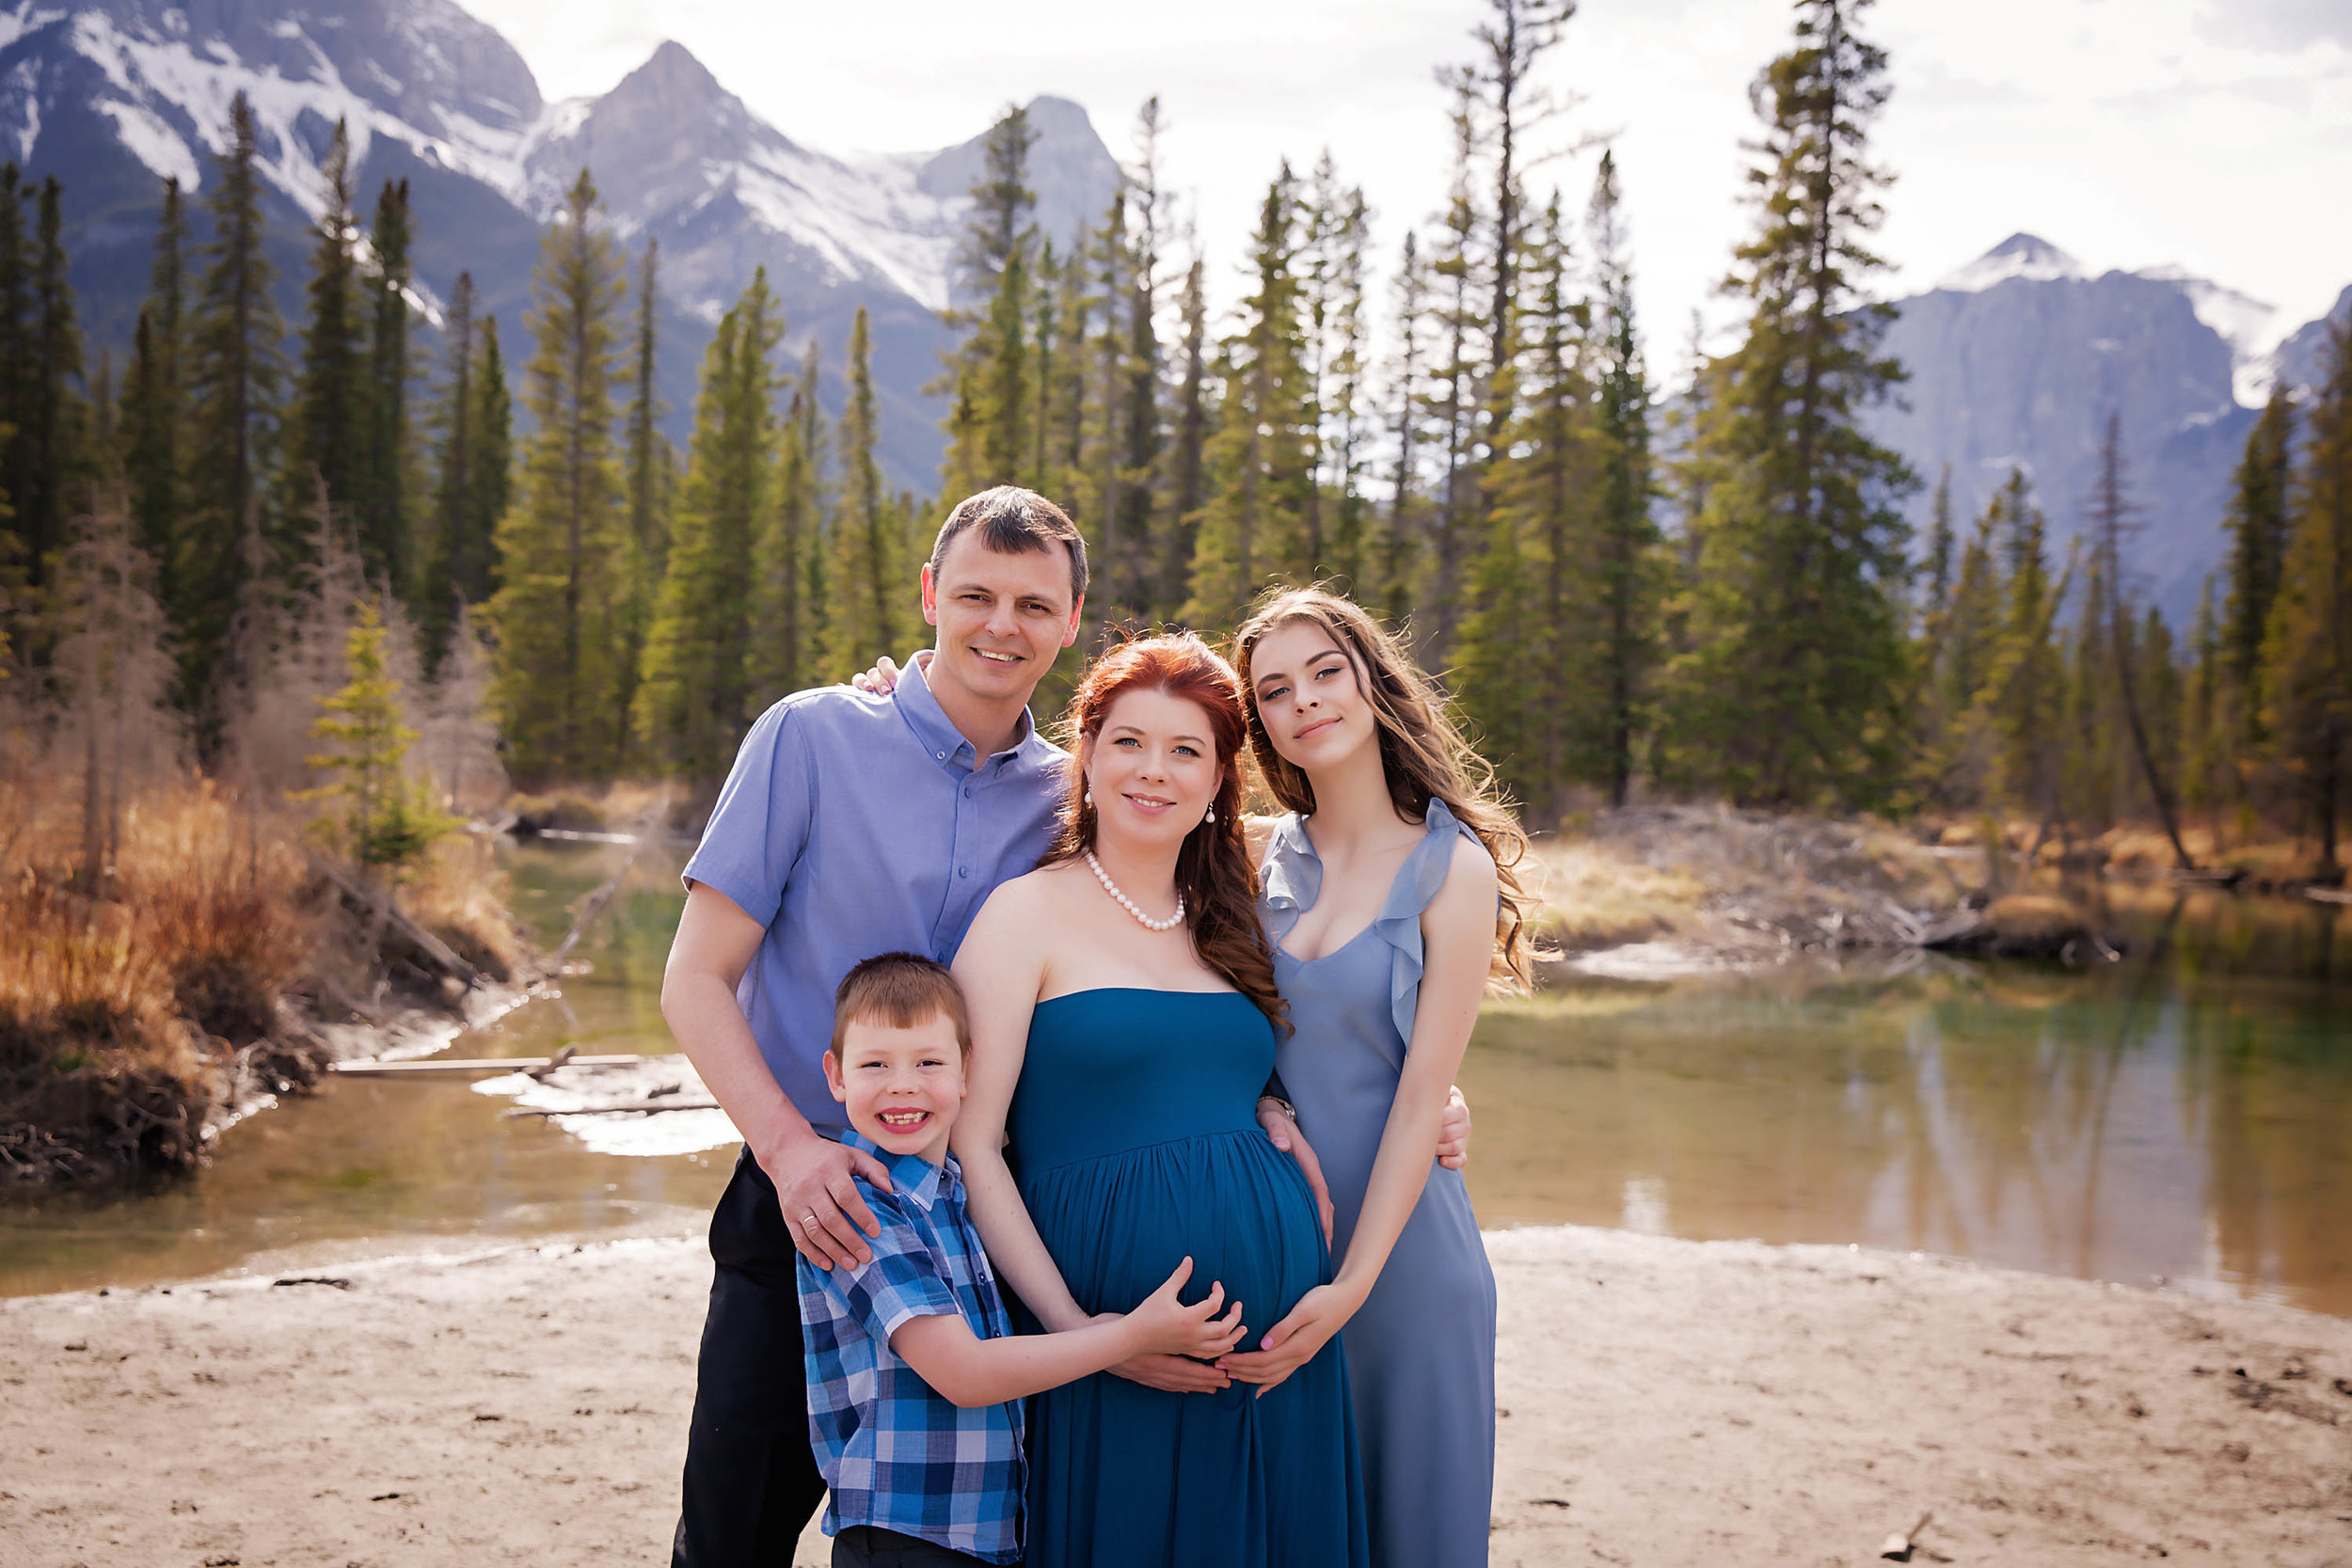 Family of 4 about to become a family of 5. Mountain maternity session in Canmore, Alberta. Calgary and Airdrie newborn and maternity photographer - Milashka Photography